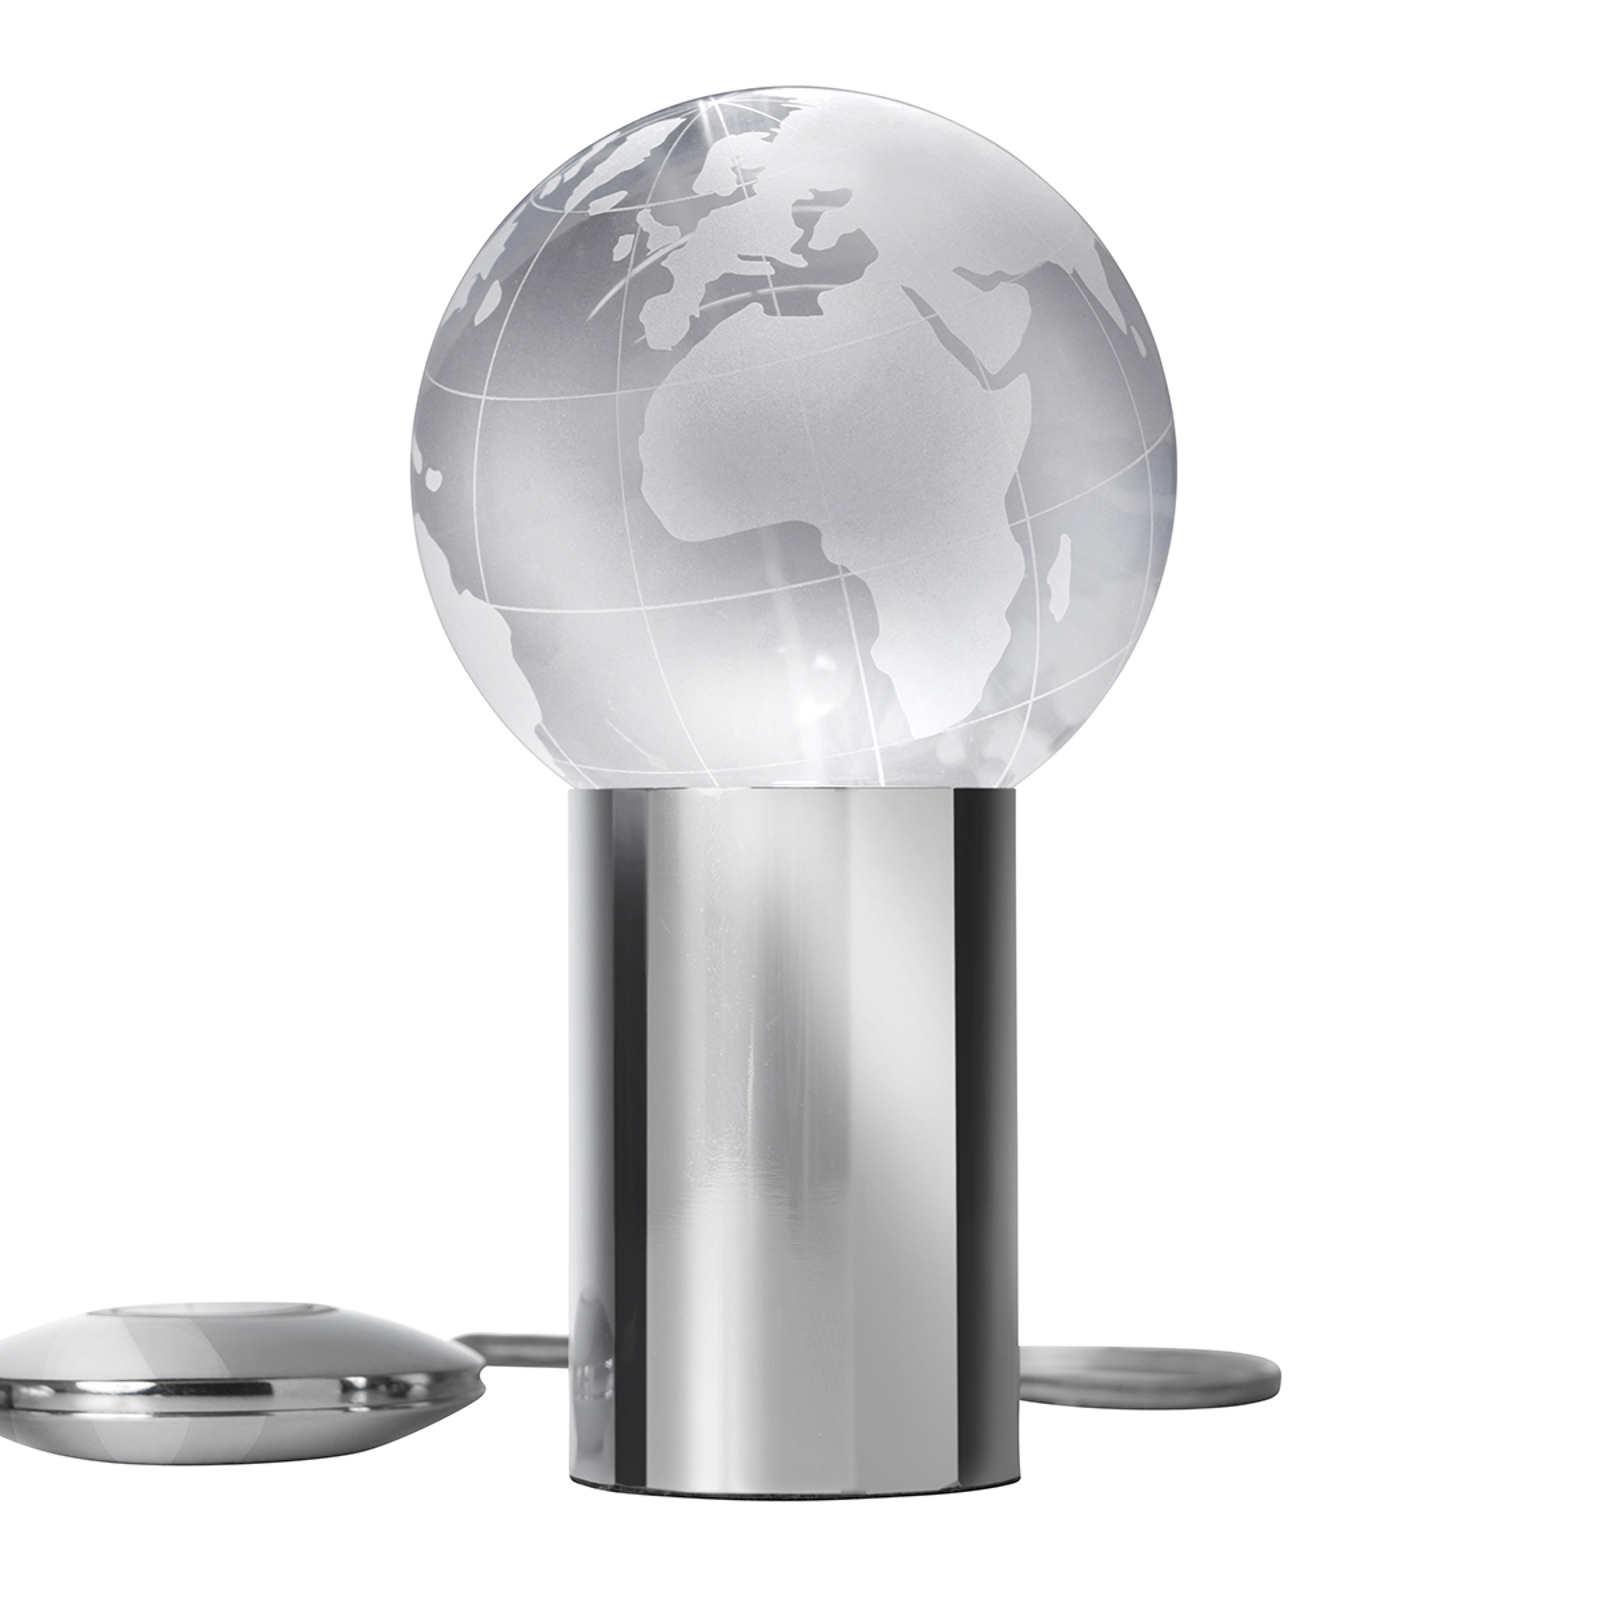 Petite lampe à poser LED Contro World, dimmable